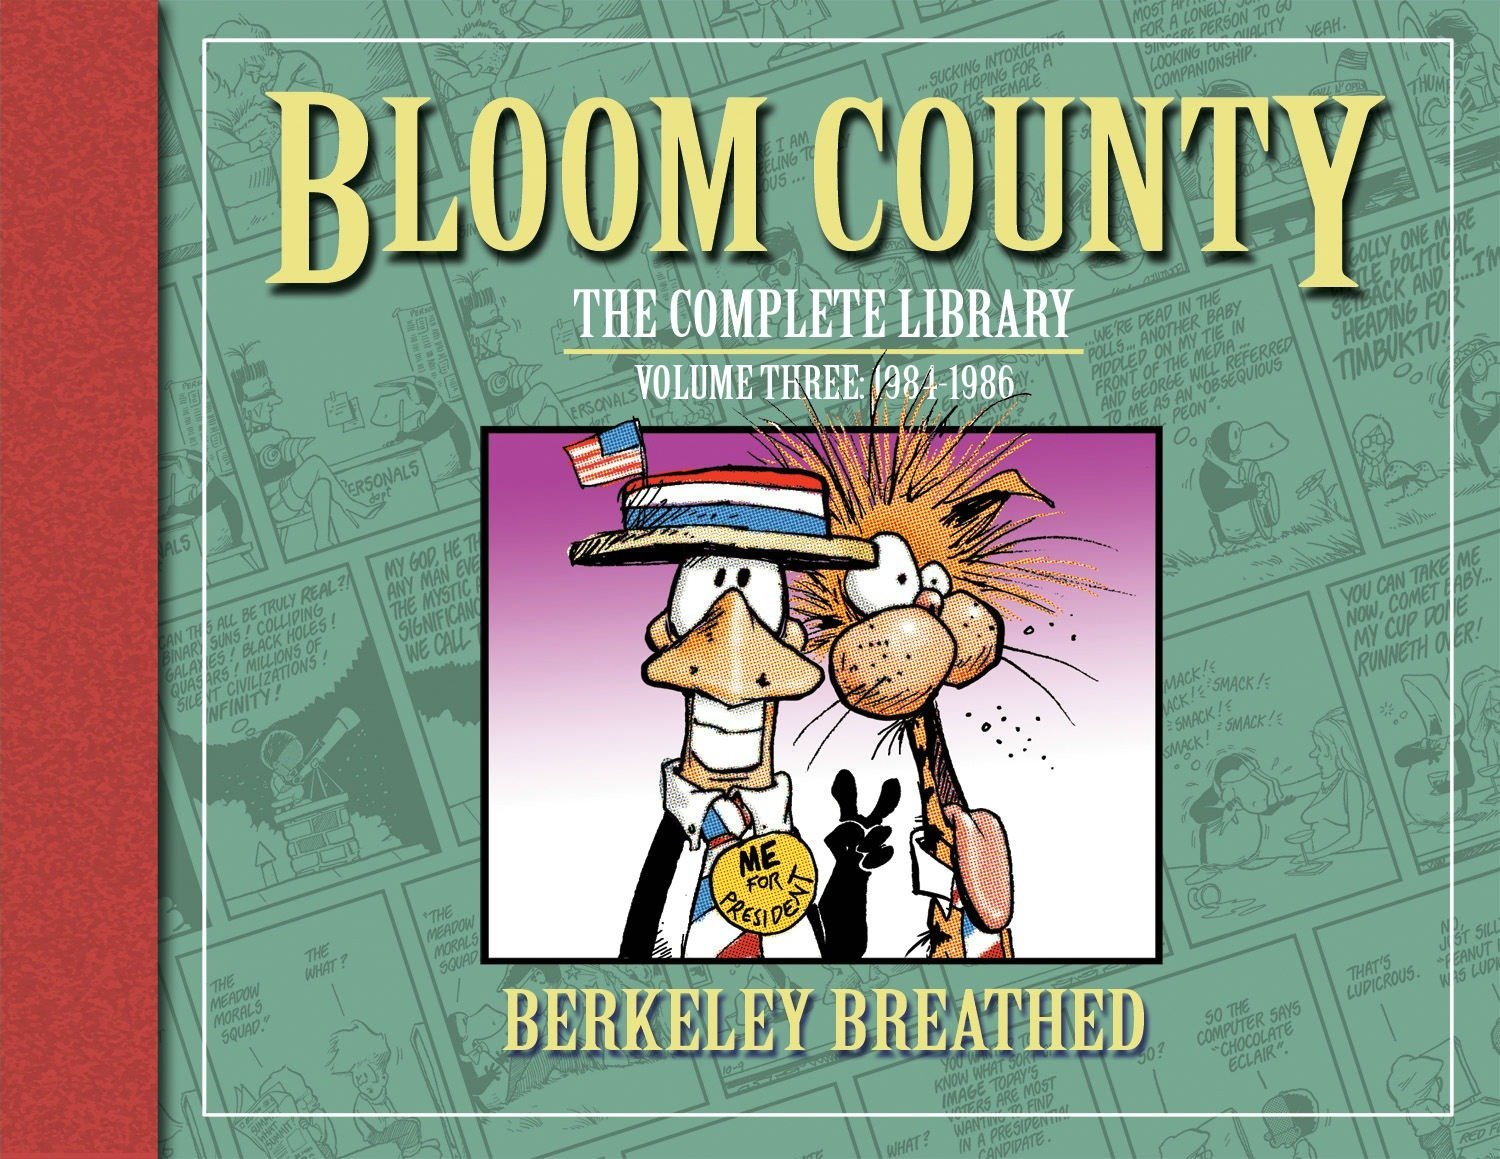 Bloom County: The Complete Library, Vol. 3: 1984-1986 (Bloom County Library) pdf epub